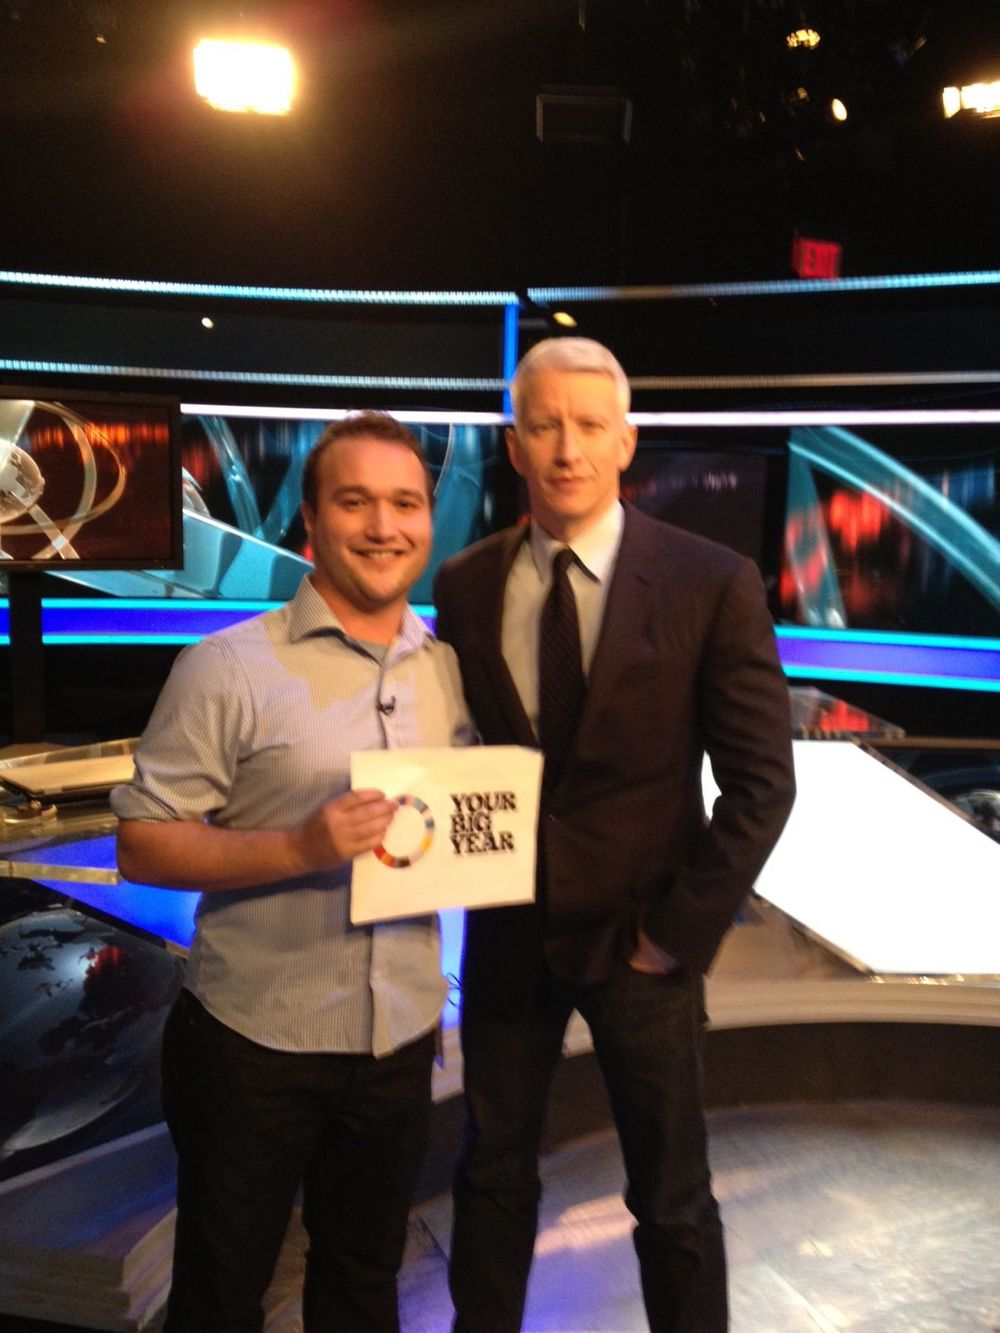 Anderson Cooper, Journalist, CNN